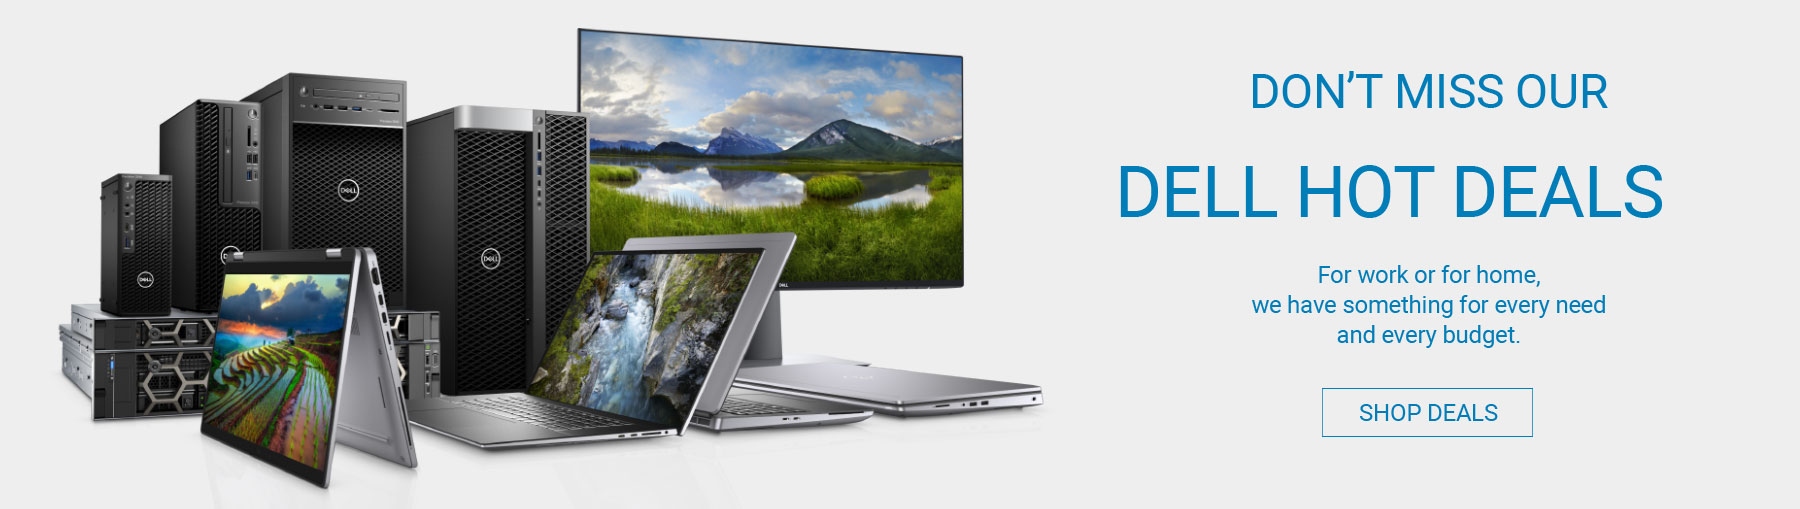 Dell Hot Deals